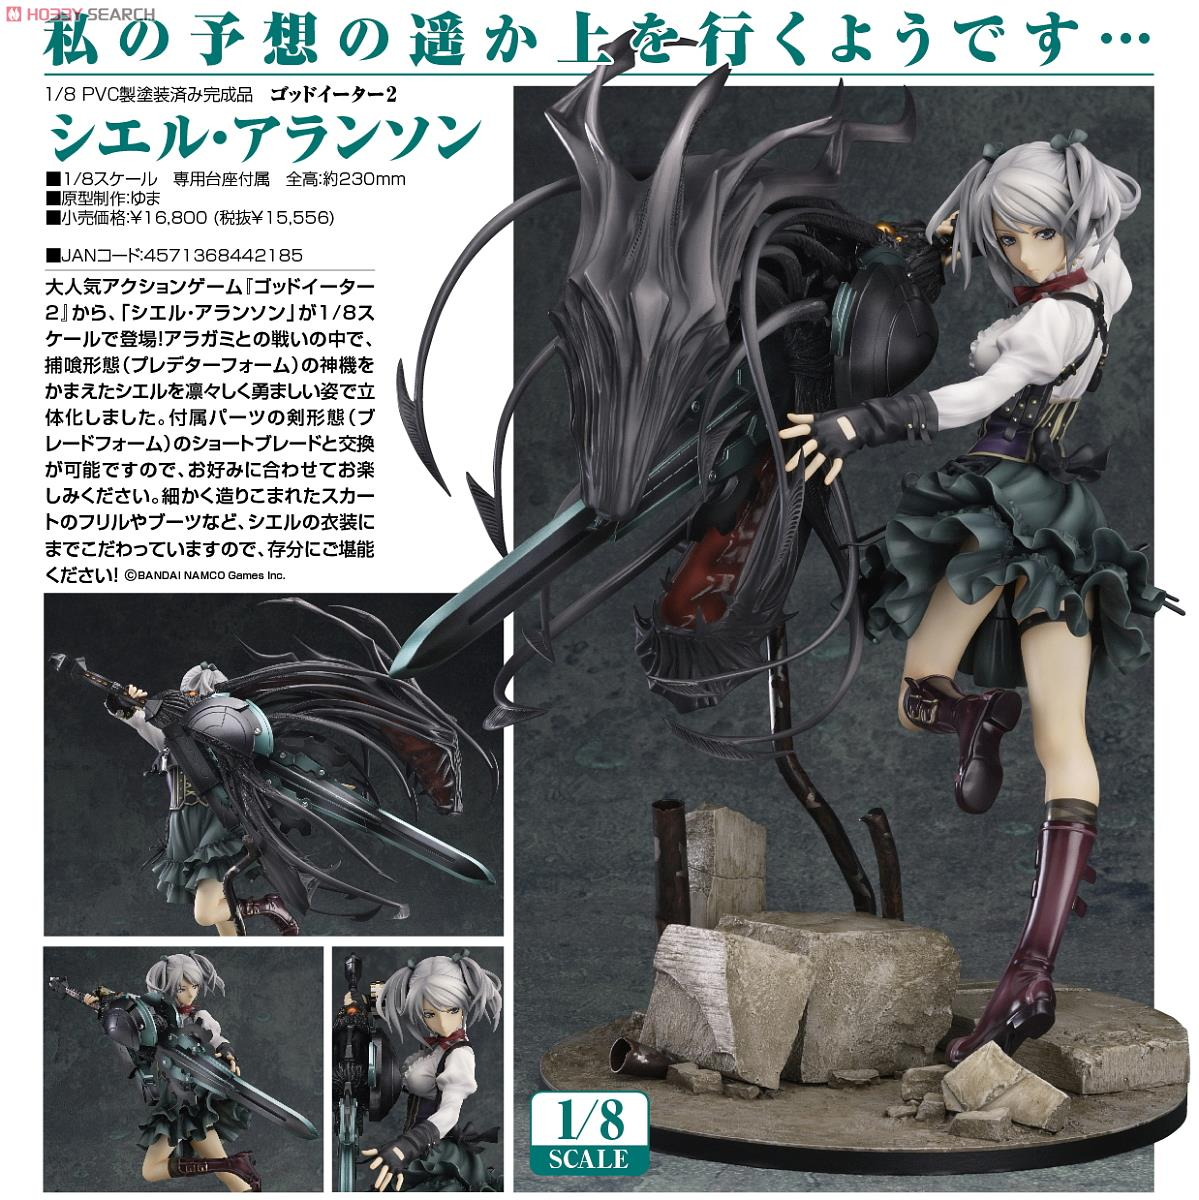 "GoodSmile Company has announced preoder for this lovely scaled figure of Ciel Alencon from God Eater 2. She is posed with her powerful God Arc weapon in ""Predator Form"". A ""Blade Form"" version of the weapon is also included, allowing you to choose which you prefer.   She is scheduled for release in Dec 2014, and will be retailing for 16,800 yen. Interested folks can place your preorder with HobbyLink Japan, CDJapan and Hobby Search."